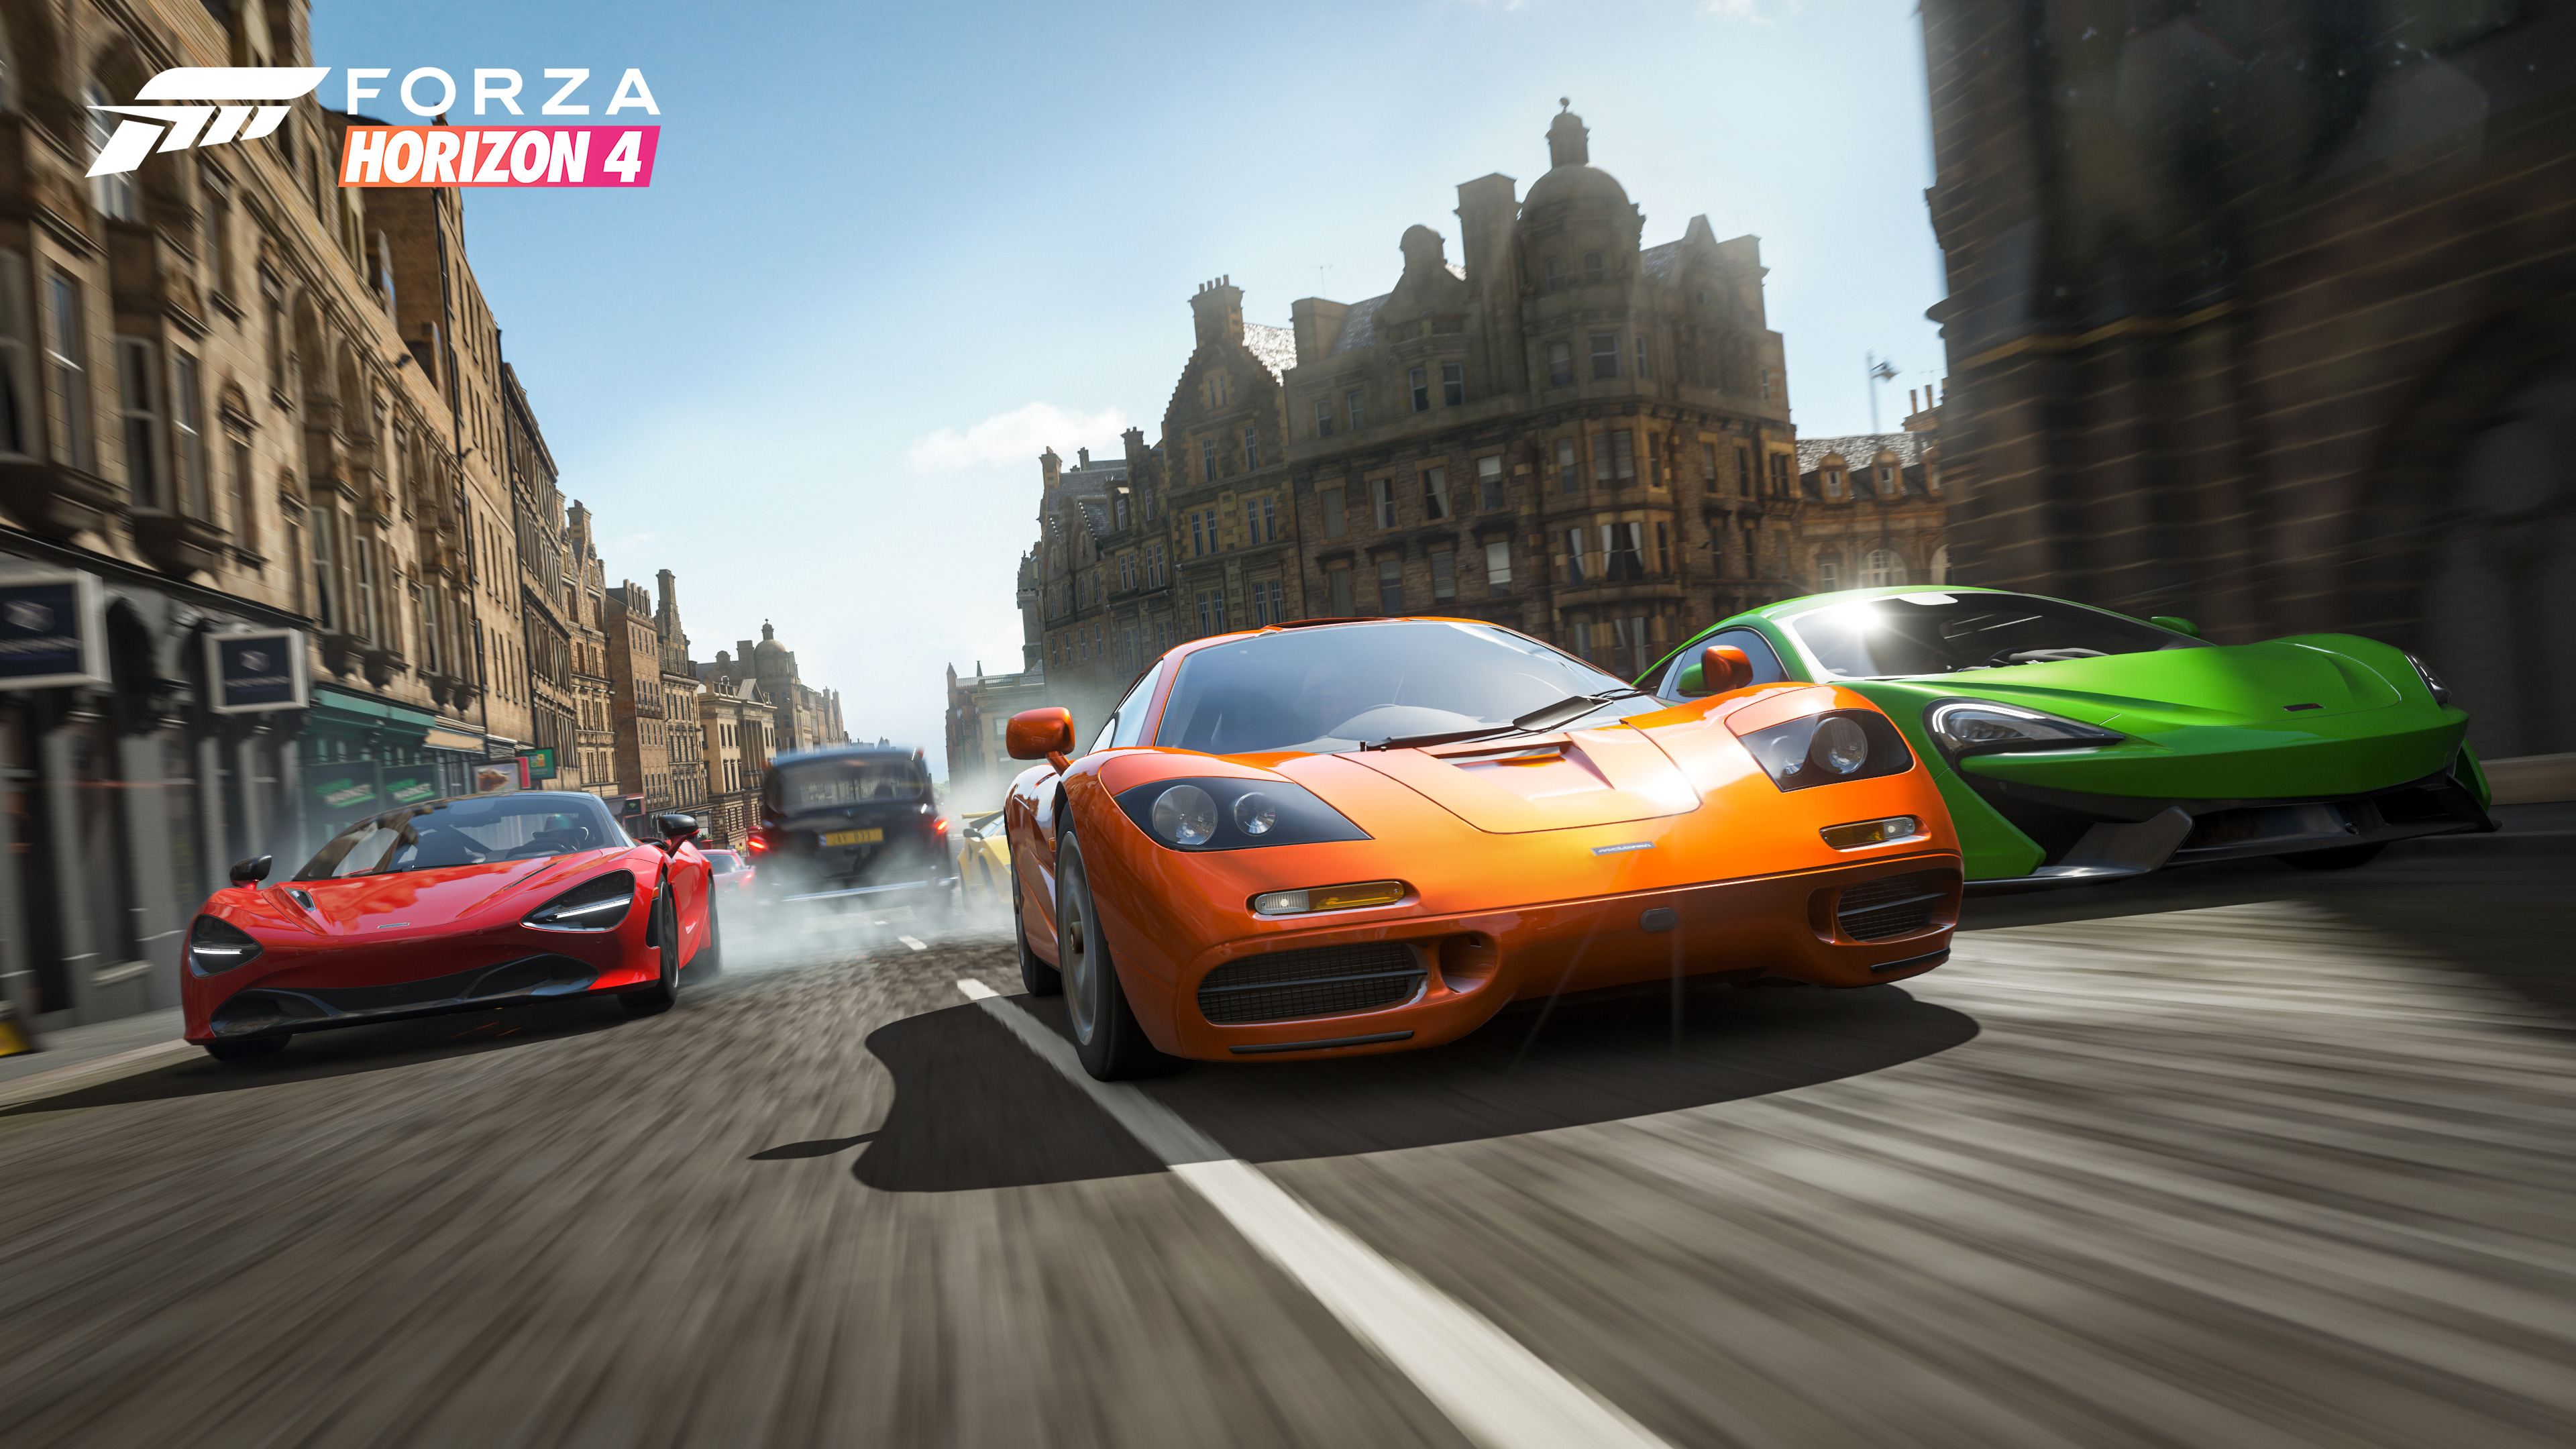 Forza horizon 4 street racing 4k hd games 4k wallpapers images backgrounds photos and pictures - Forza logo wallpaper ...